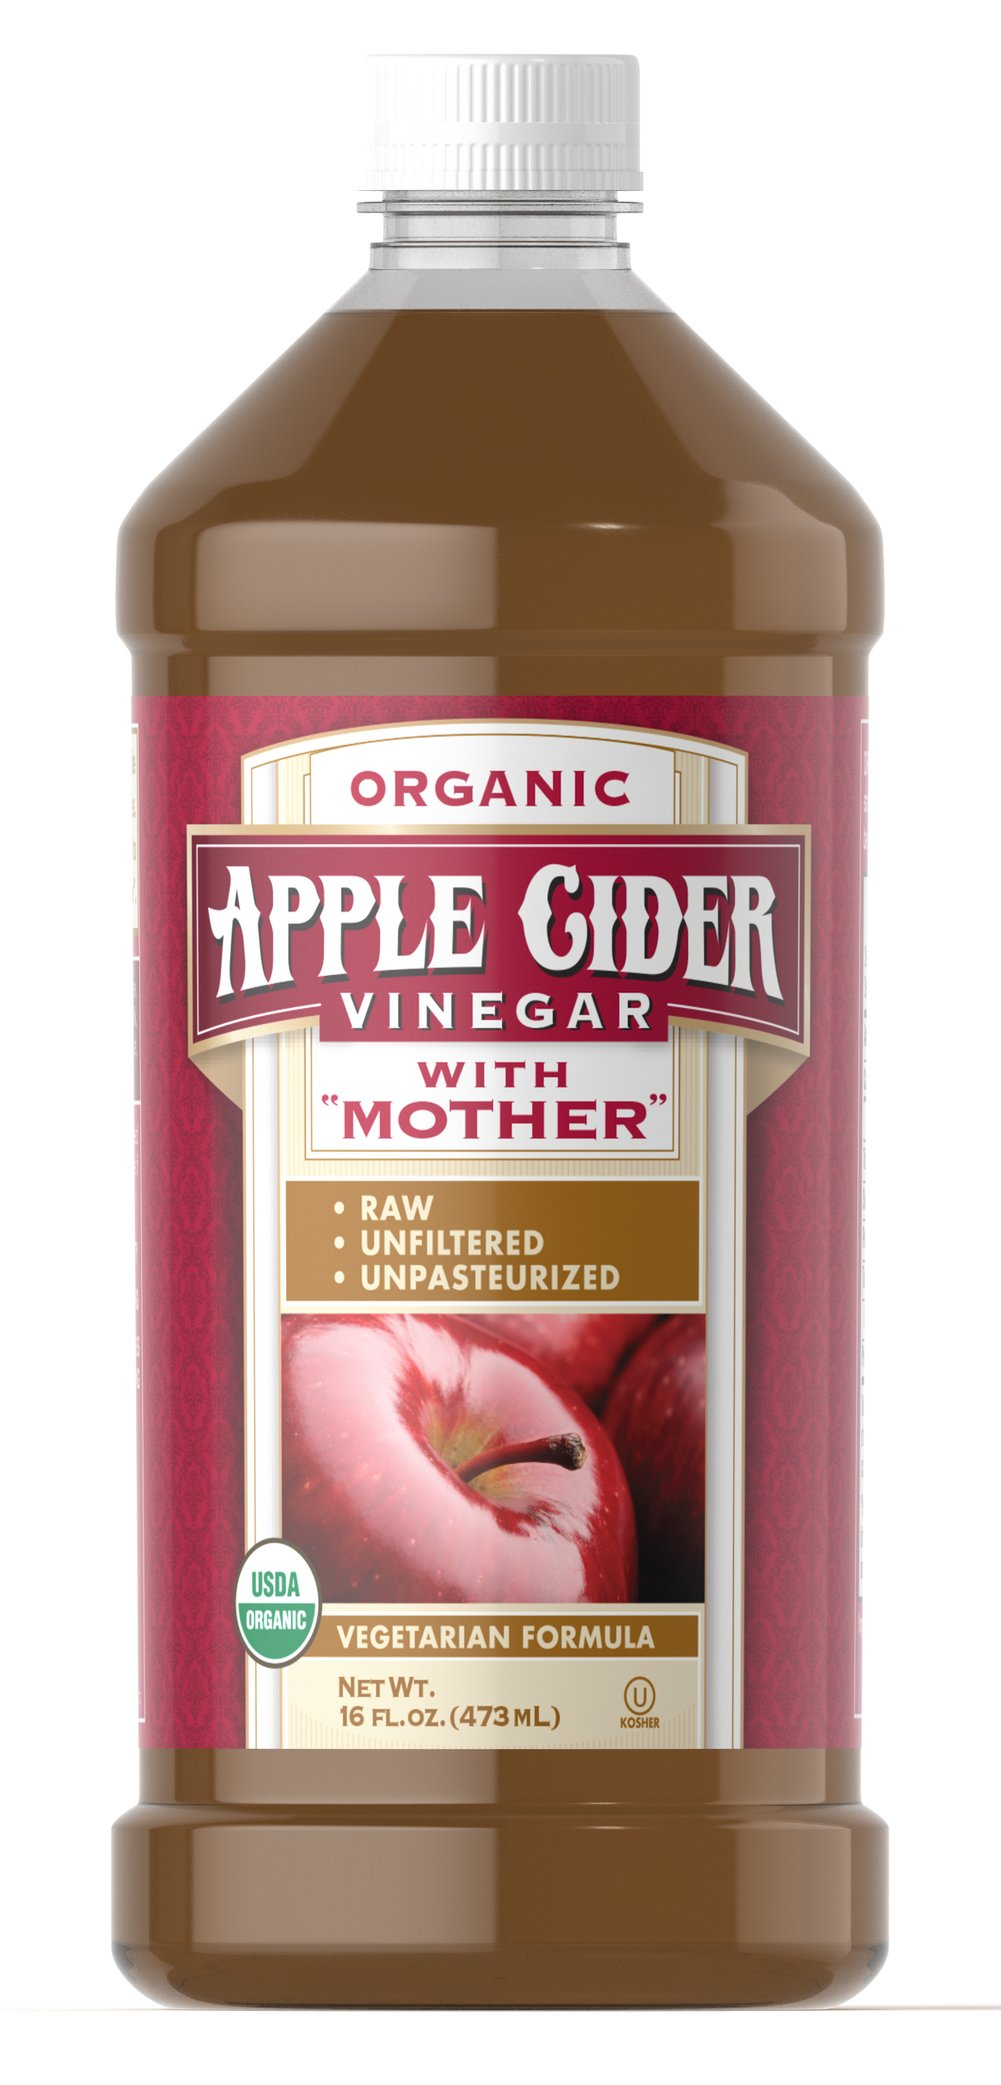 "Organic Apple Cider Vinegar with ""Mother"" <ul><li>Raw</li><li>Unfiltered</li><li>Unpasteurized</li></ul><p>Organic Apple Cider Vinegar is made from certified Organic grown apples.  It is unpasteurized and unfiltered to retain the naturally formed ""Mother"".</p> 16 oz Liquid  $9.29"